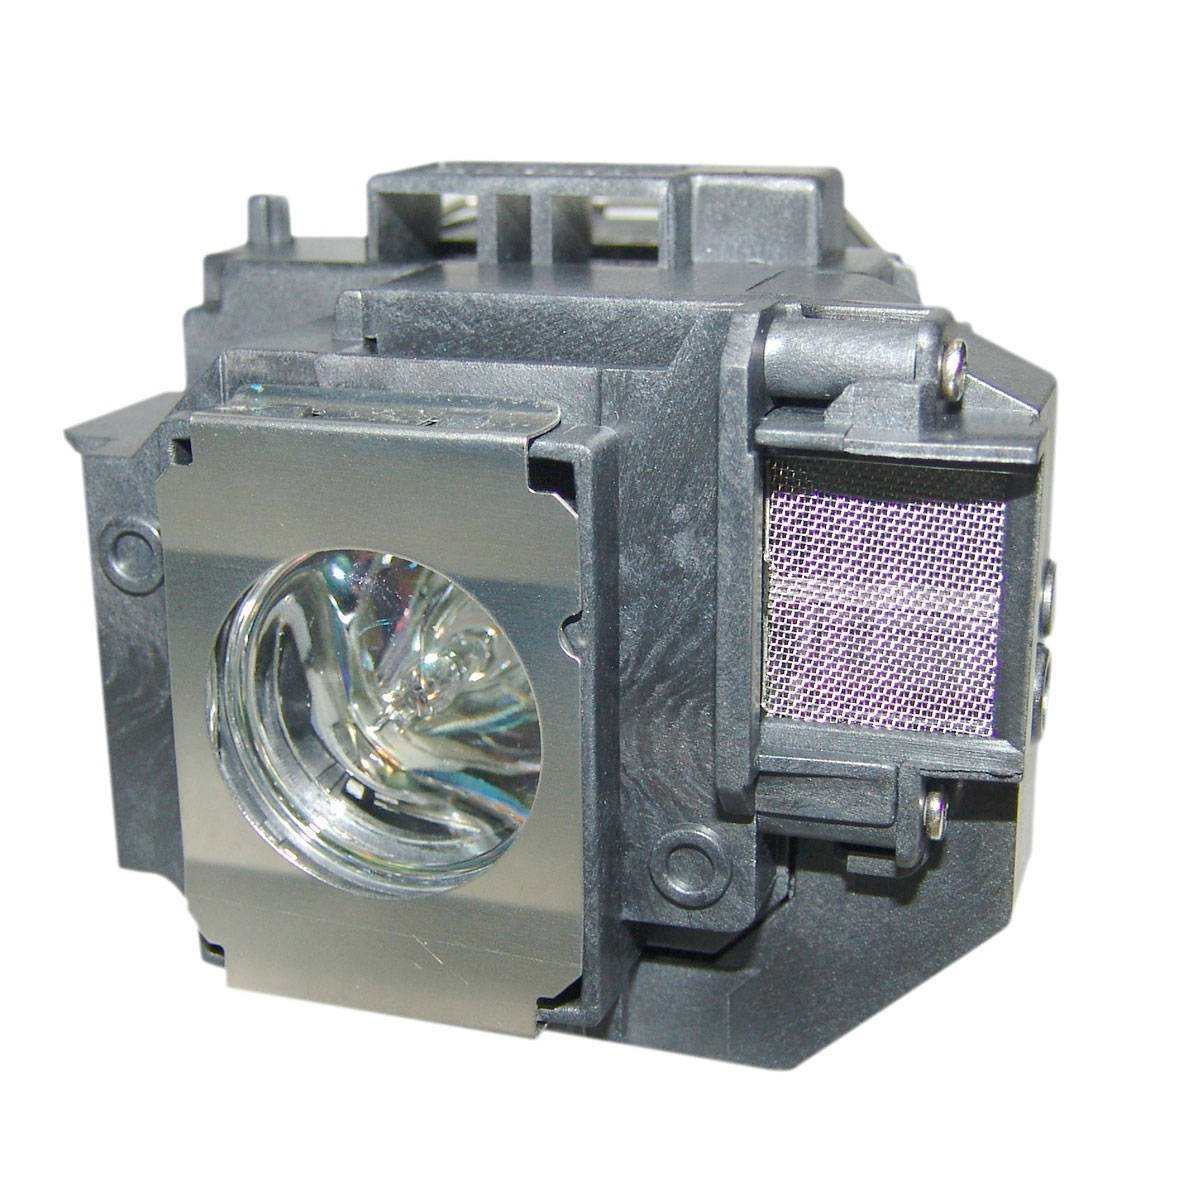 ELPLP55 V13H010L55 for Epson EB-W8D H335A Projector Lamp Bulb with housing литой диск replica td sk11 s 6 5x16 5x112 d57 1 et46 gmf